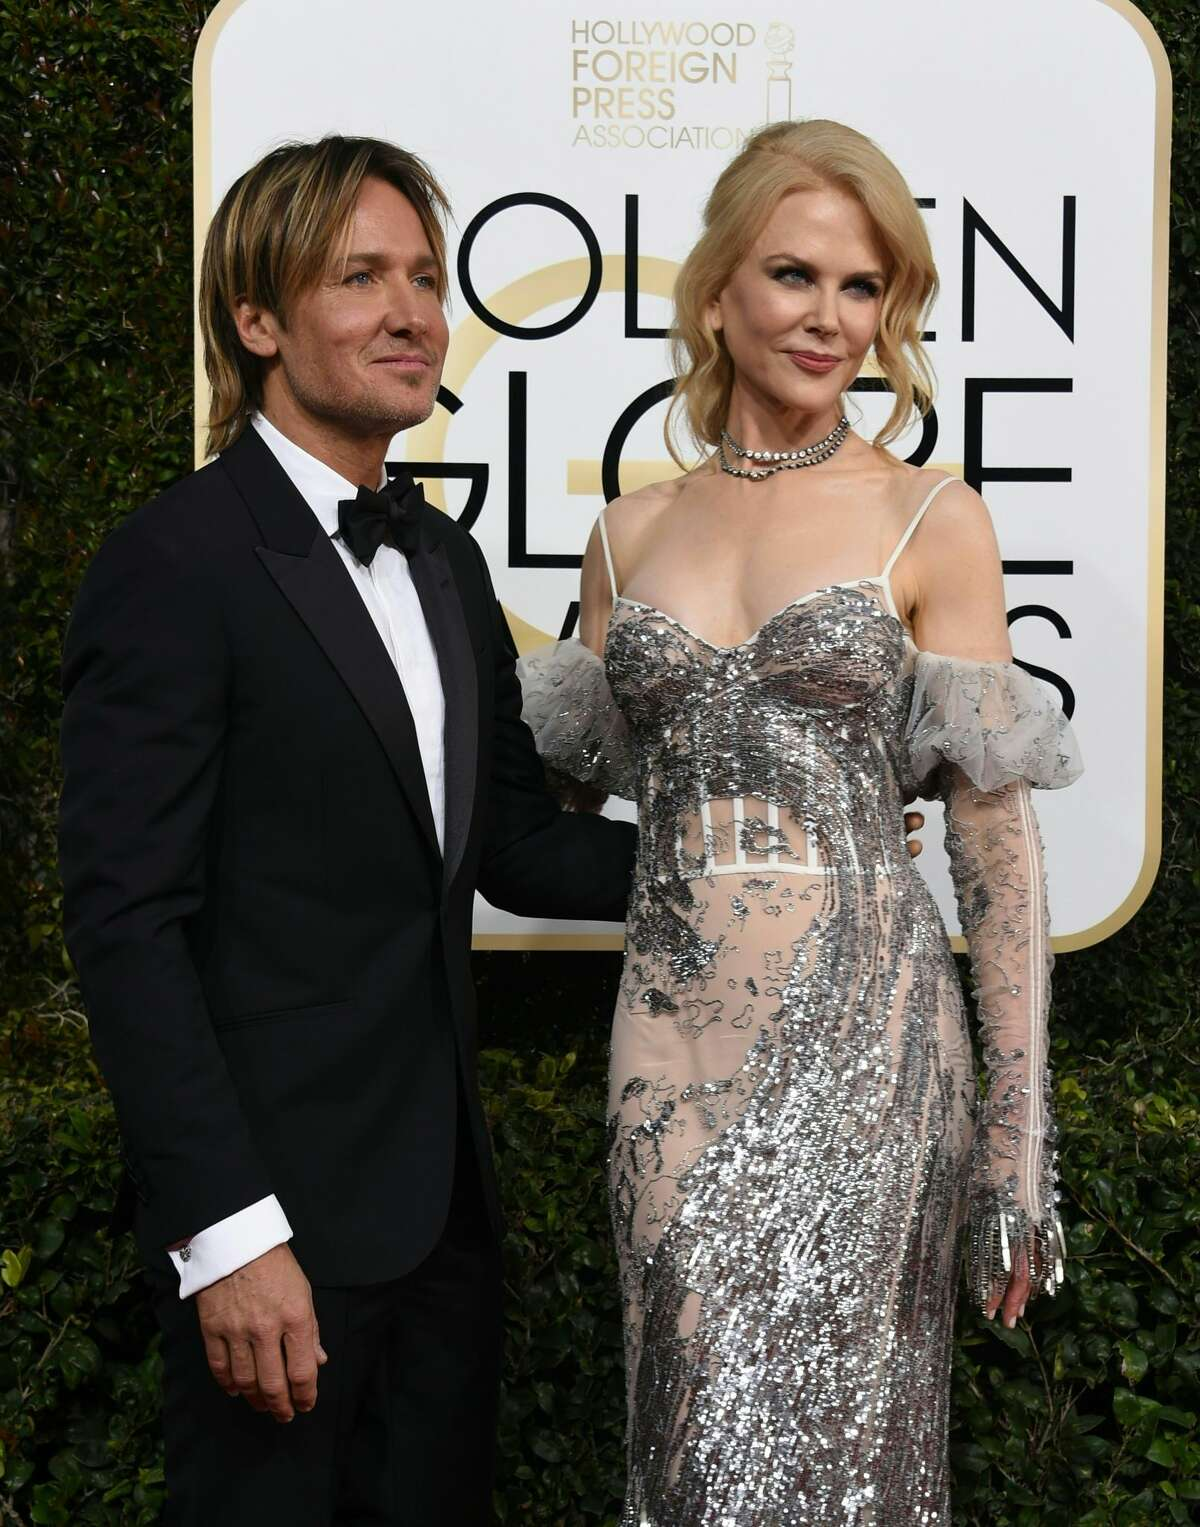 Nicole Kidman (R) and Keith Urban arrive at the 74th annual Golden Globe Awards, January 8, 2017, at the Beverly Hilton Hotel in Beverly Hills, California.